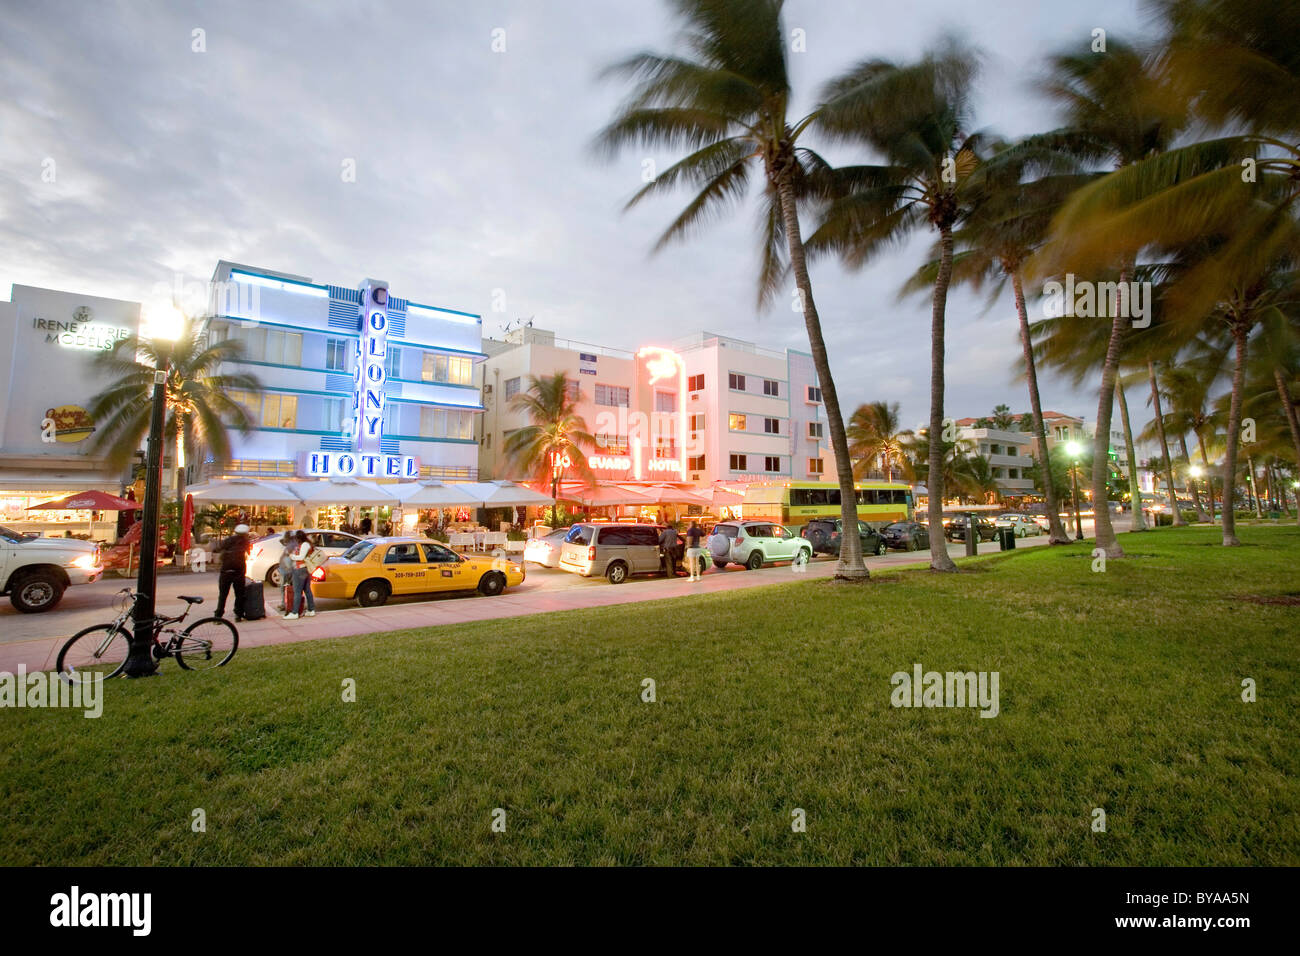 Illuminated Colony Hotel, South Beach, Ocean Drive, Miami, Florida, United States of America, USA - Stock Image